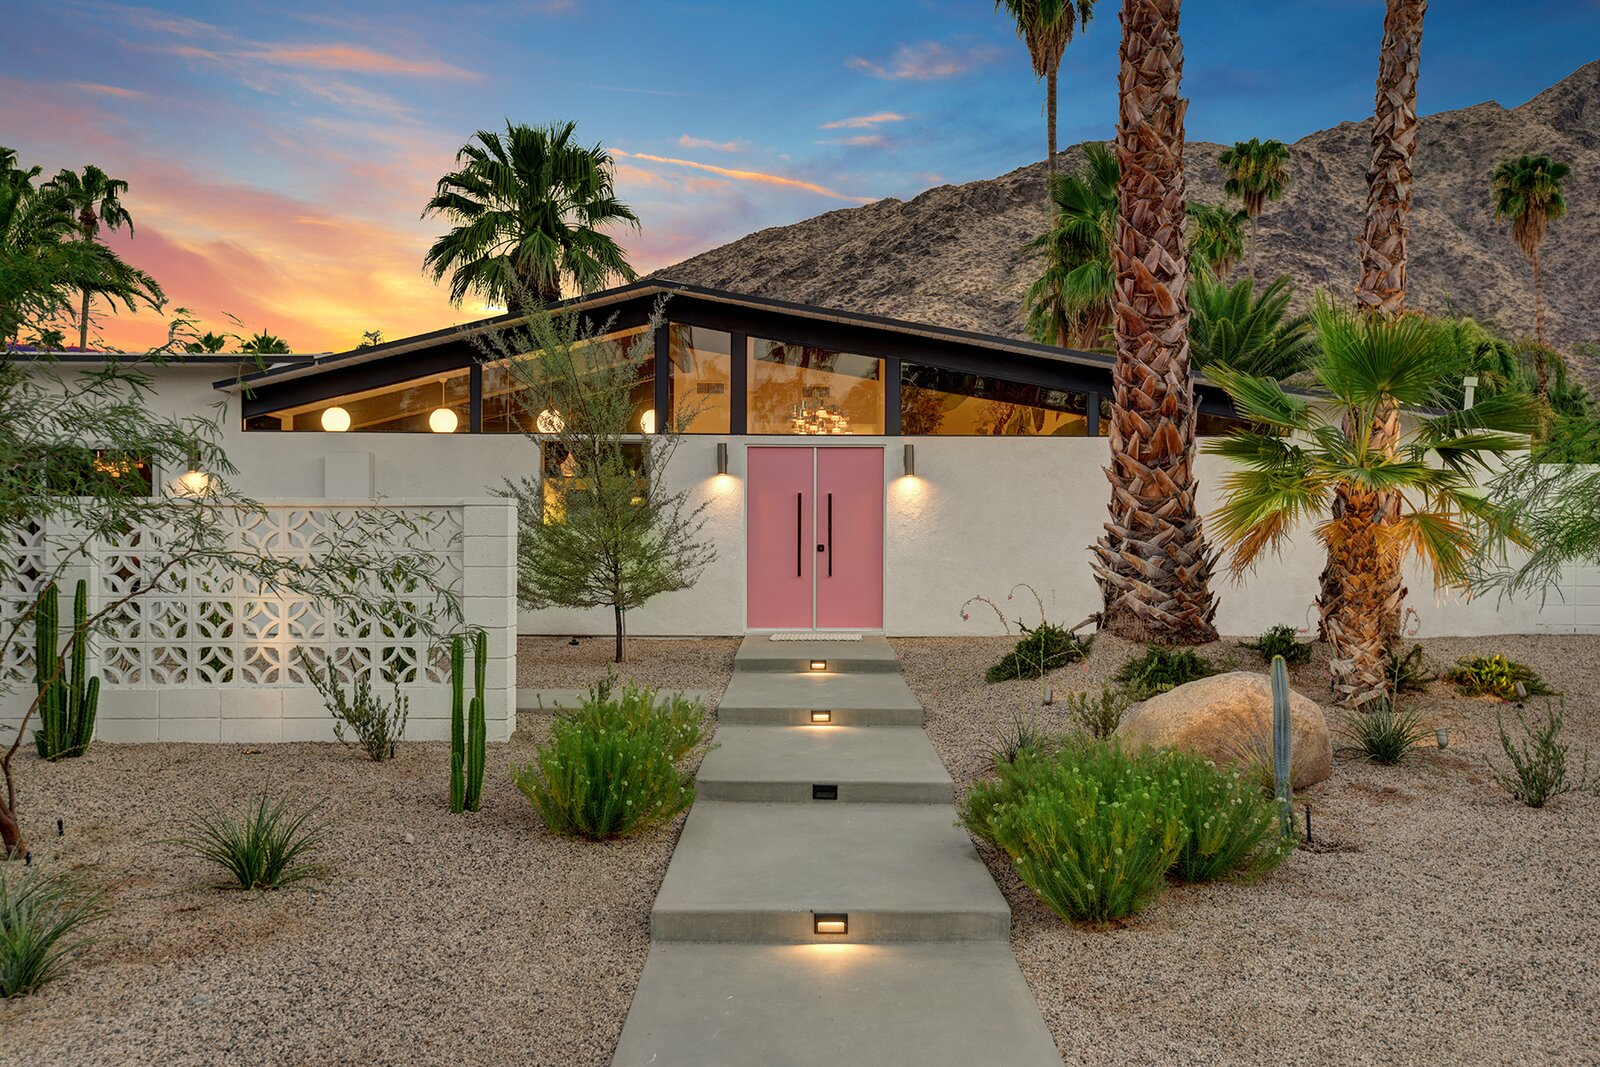 Complete with a decorative block wall and pink front door, the home's front facade looks picture-perfect against a backdrop of the desert landscape.  Photo 17 of 17 in A Palm Springs Alexander Home Sings After a Chic Renovation and Hits the Market to the Tune of $2.1M